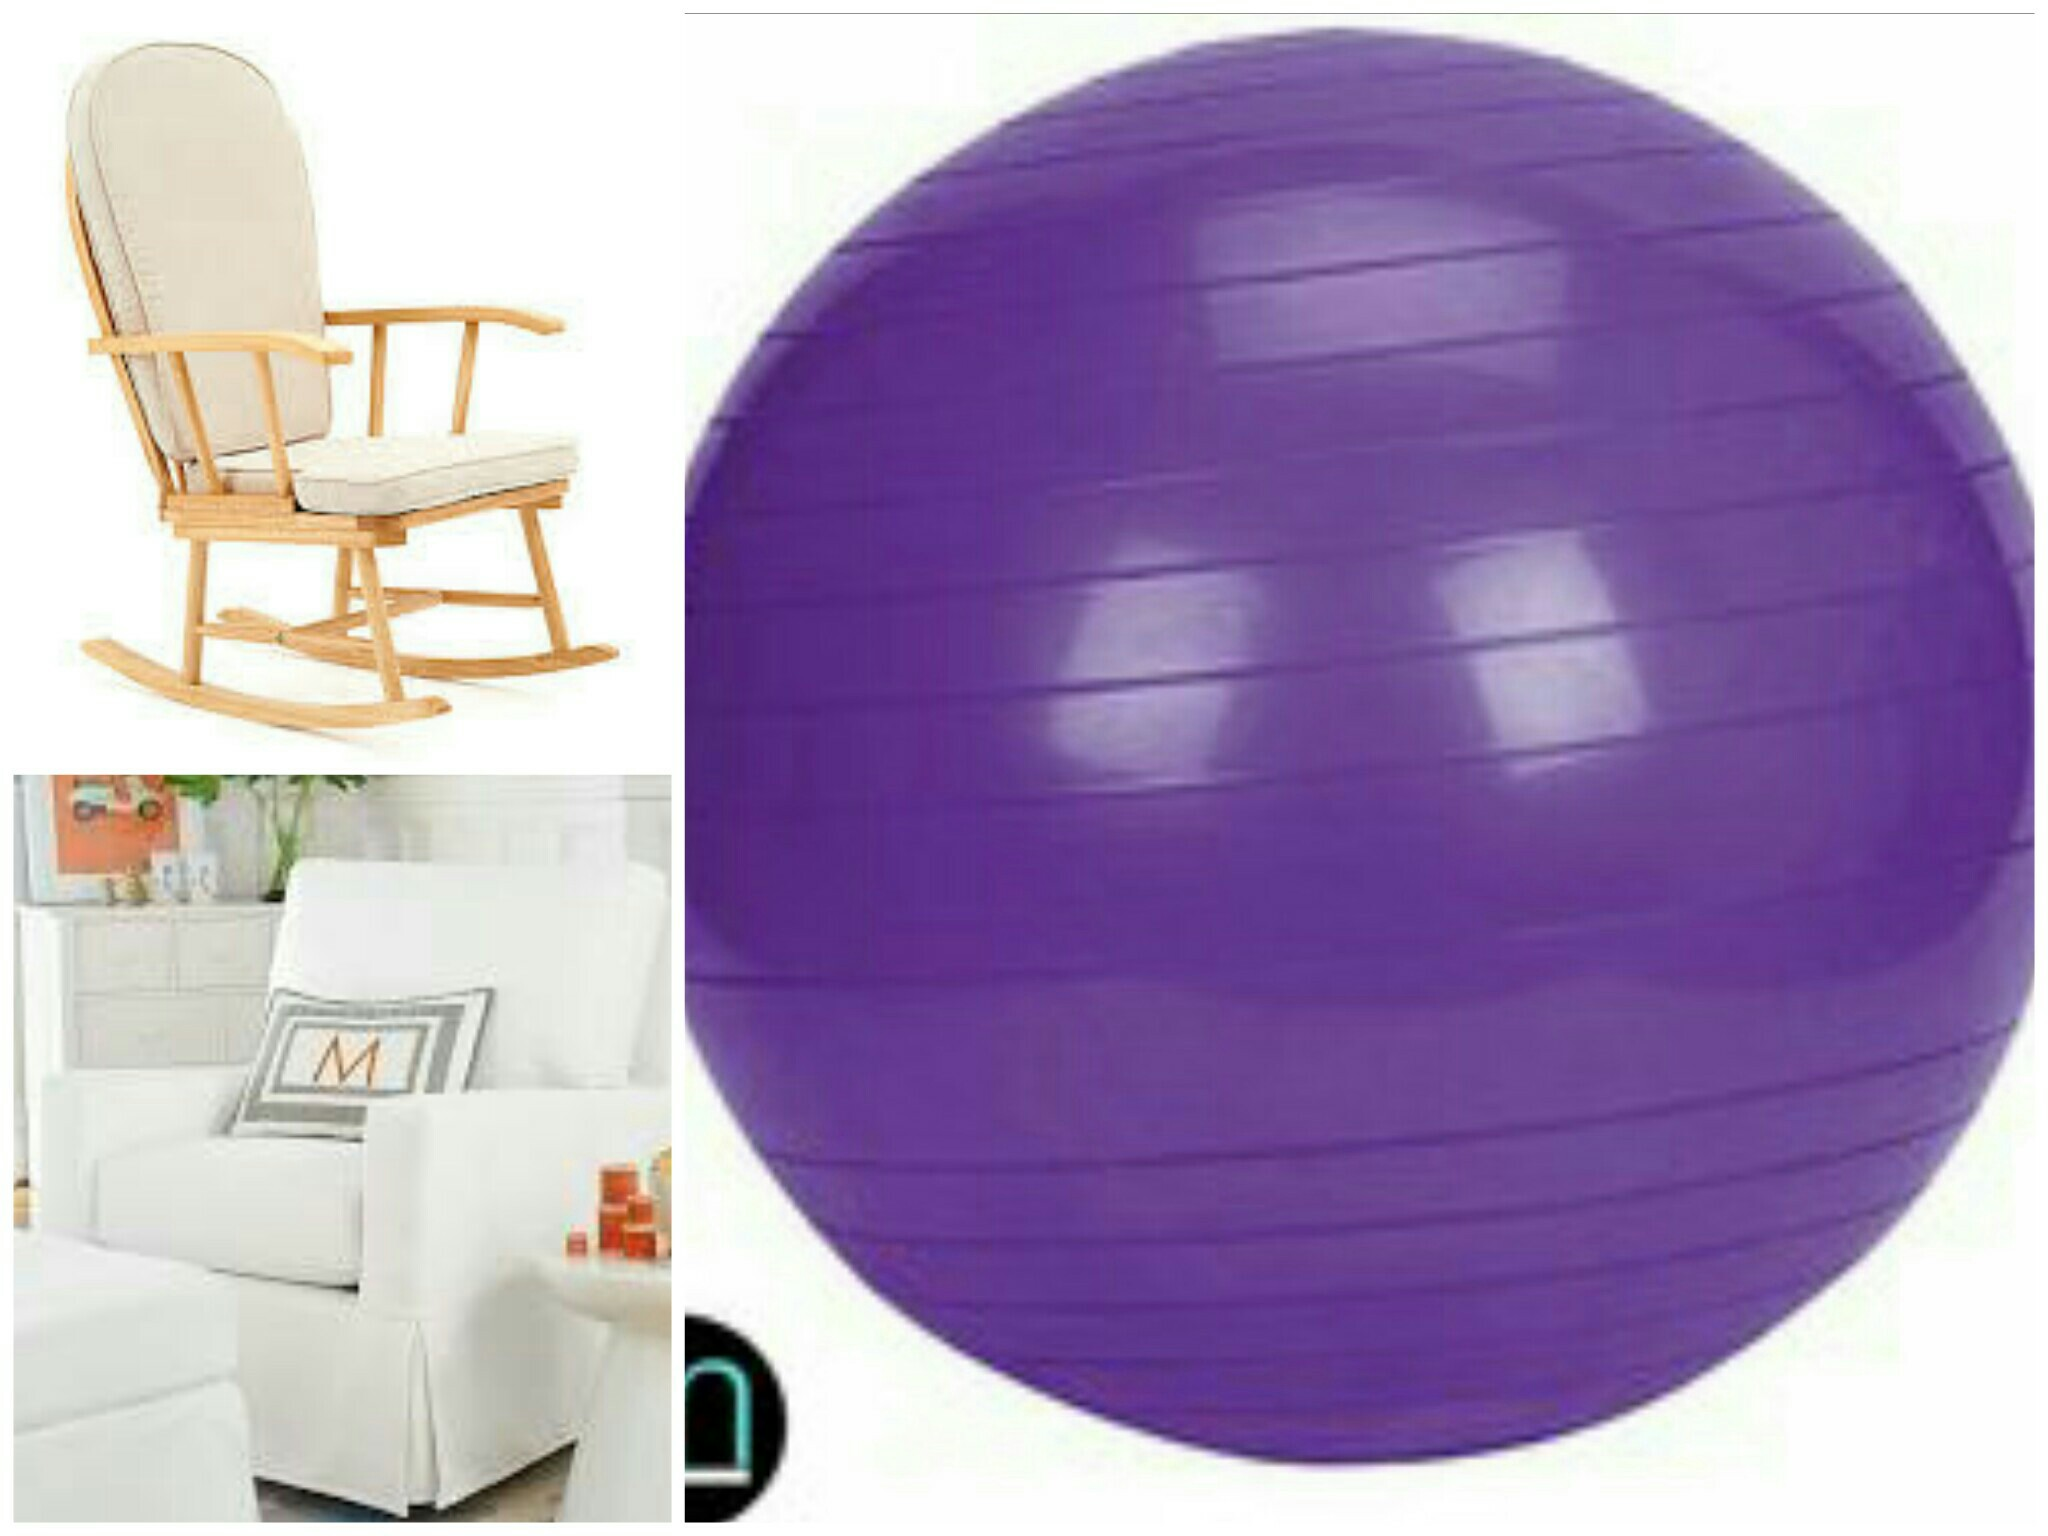 Start with a decent chair, one with motion. A rocking chair or a glider are the common buy these days. They double as support during the feed, and then can facilitate soothing motion to help calm baby. The exercise ball you may have purchased prior to having baby. This encourages great posture, and is a great tool in soothing baby. The ball does all the work for you, rather than having to bounce your tired body.